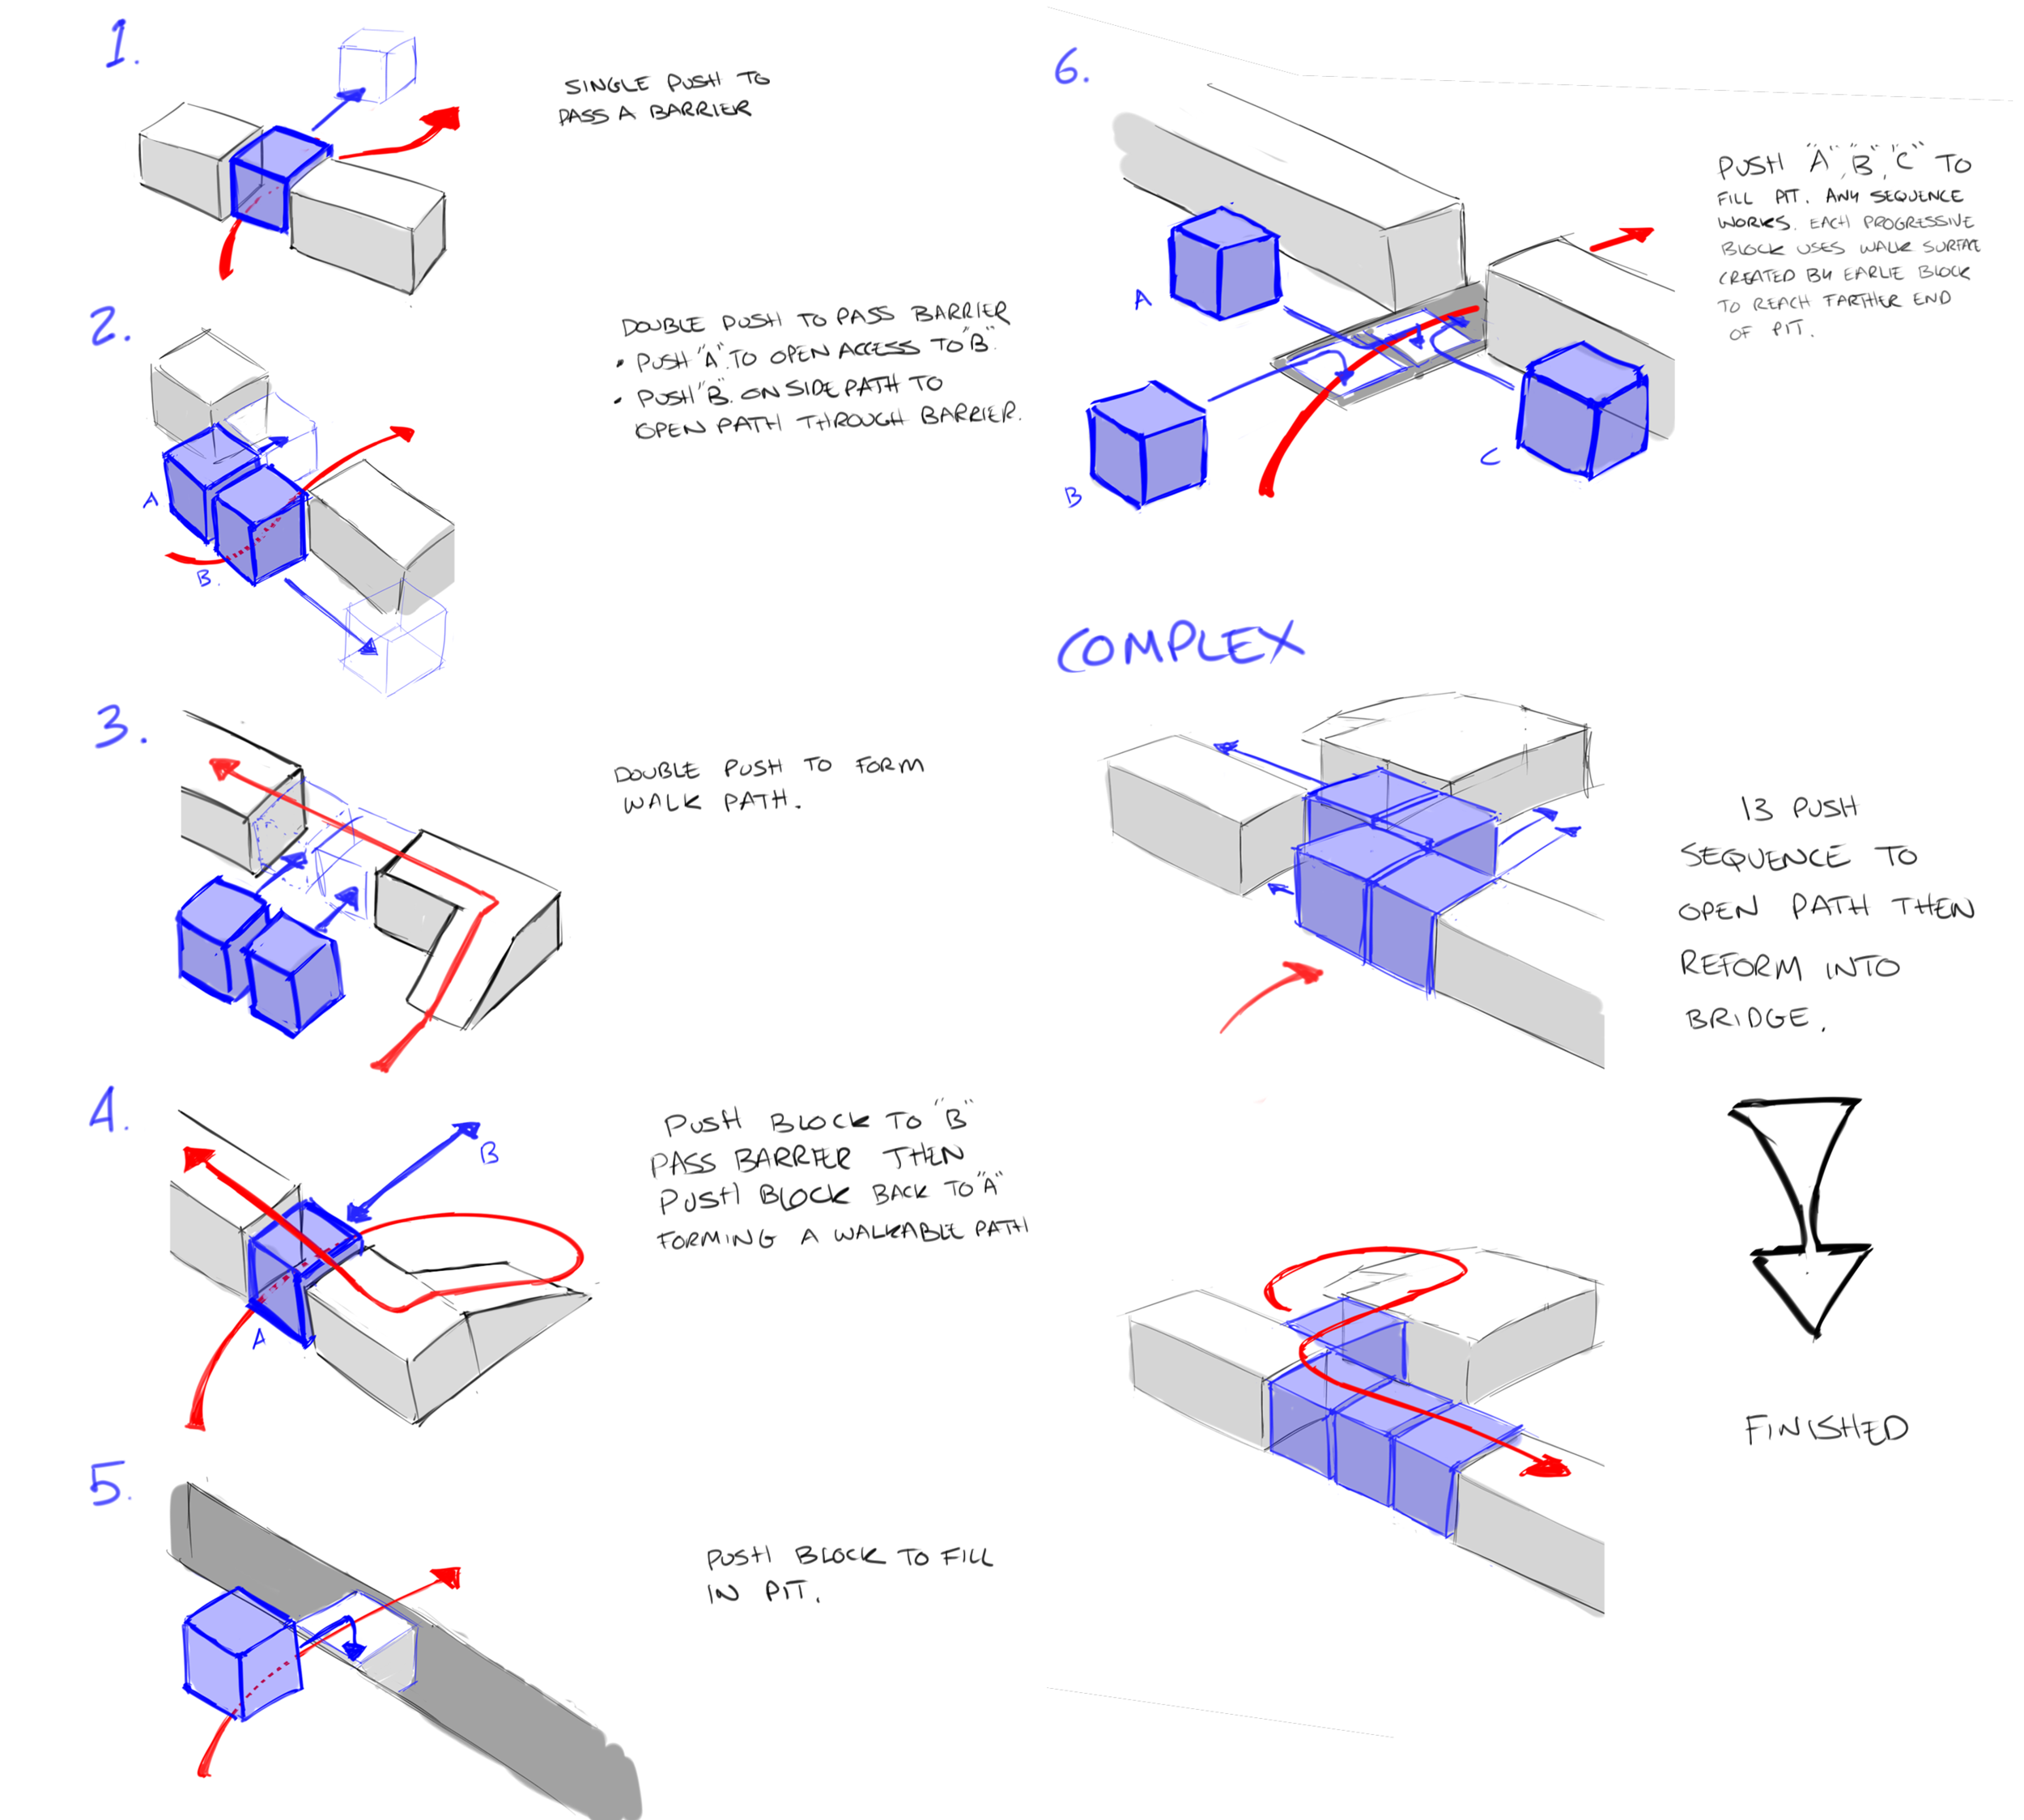 Starting Push block Progression mapped out before inserting into levels.